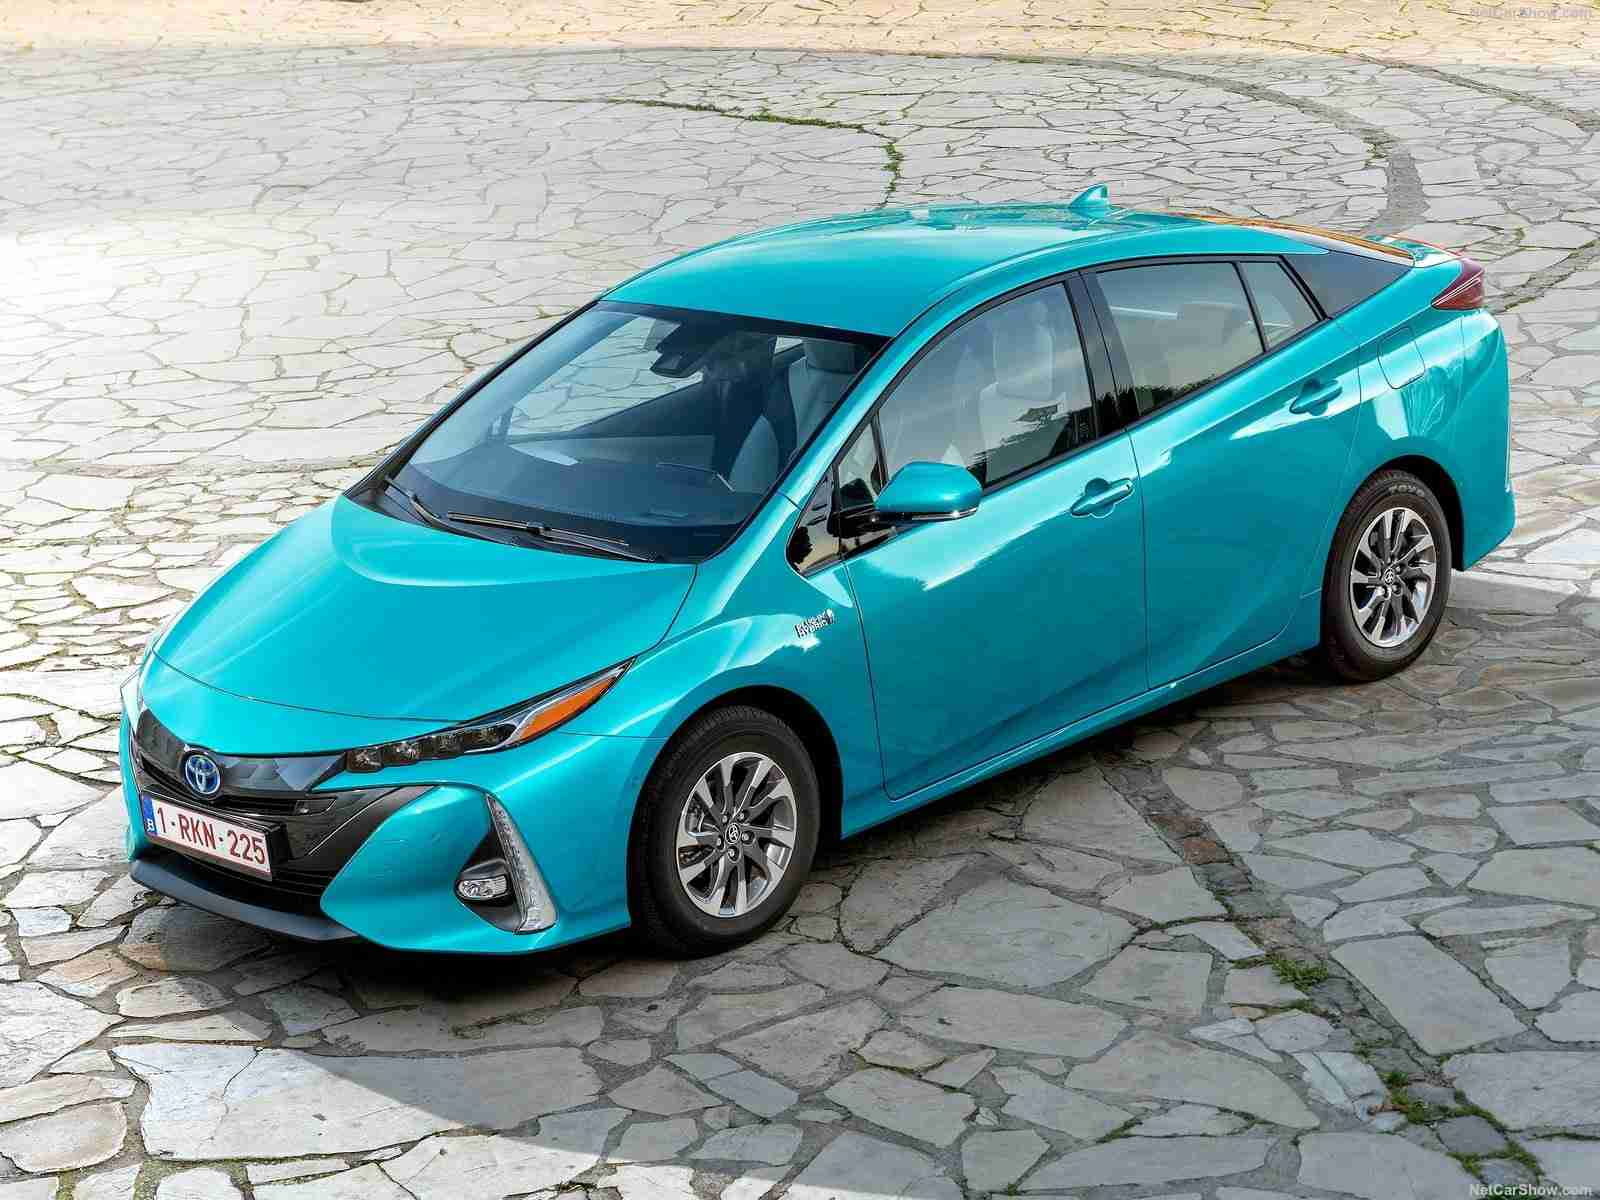 strategy memo for toyota prius Category: business analysis strategy toyota title: operation strategy of toyota the toyota prius led the way with 107,897 cars sold for the year 2005.